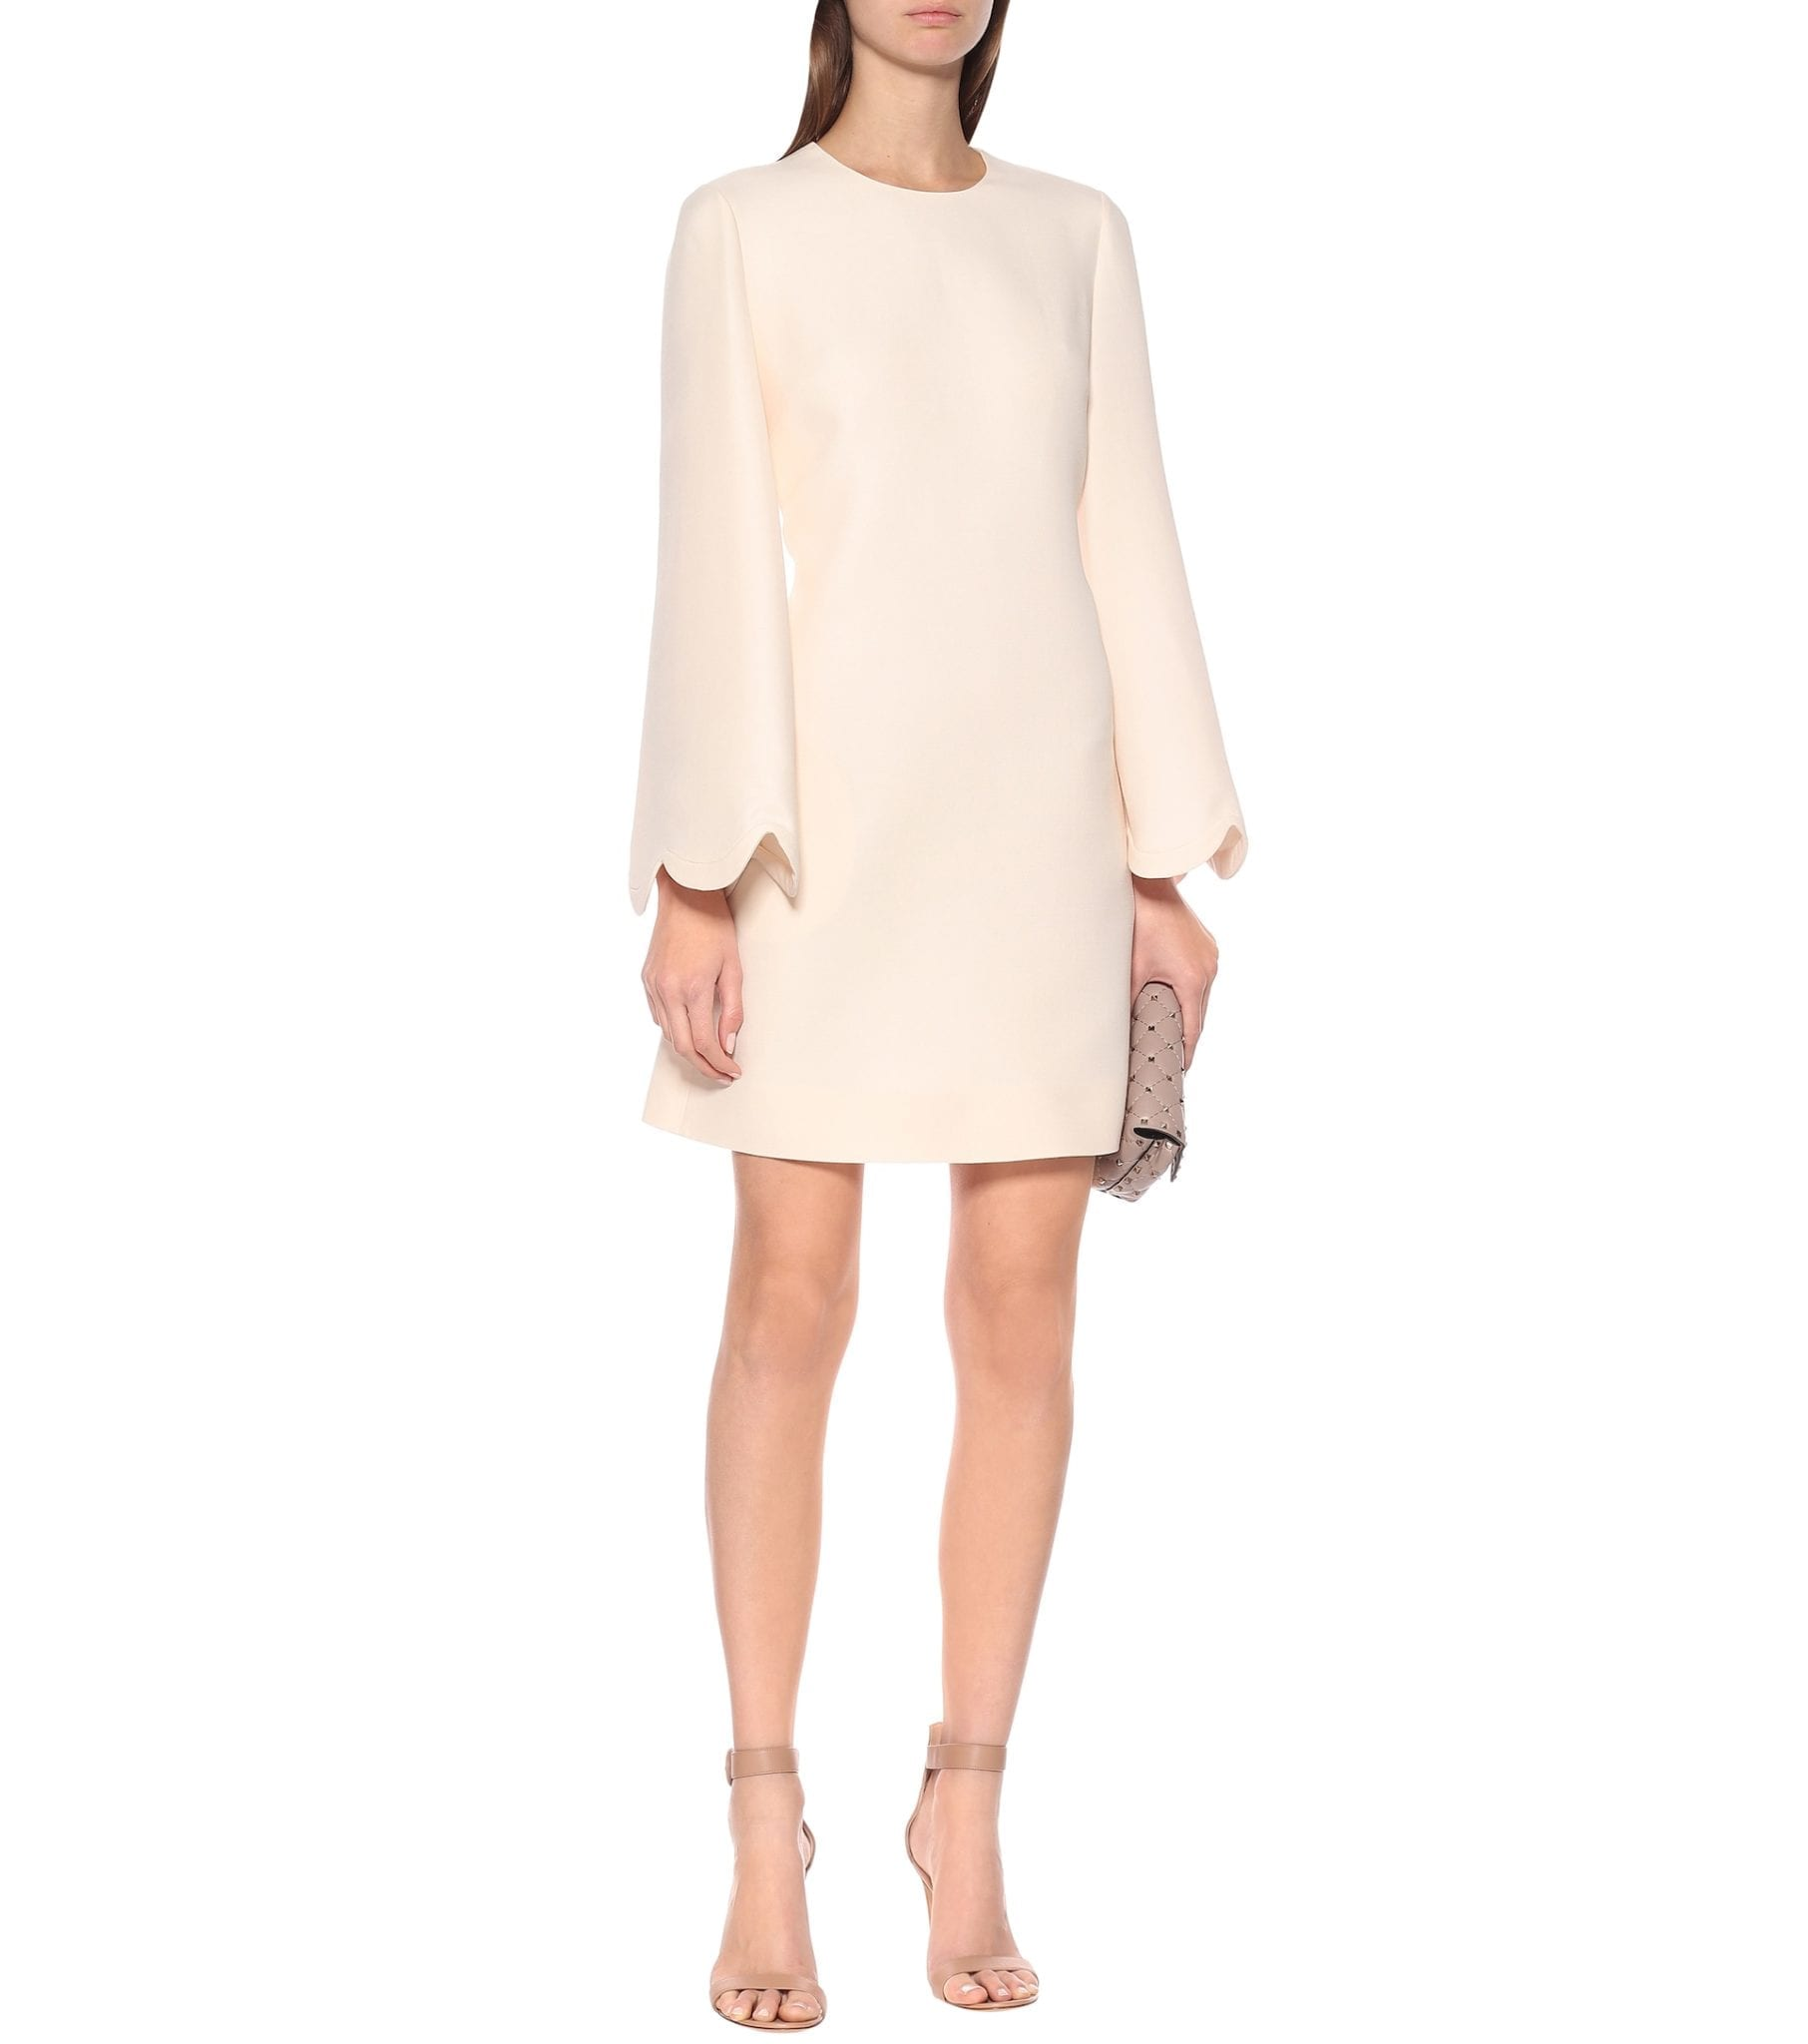 VALENTINO Wool-blend Crêpe Dress